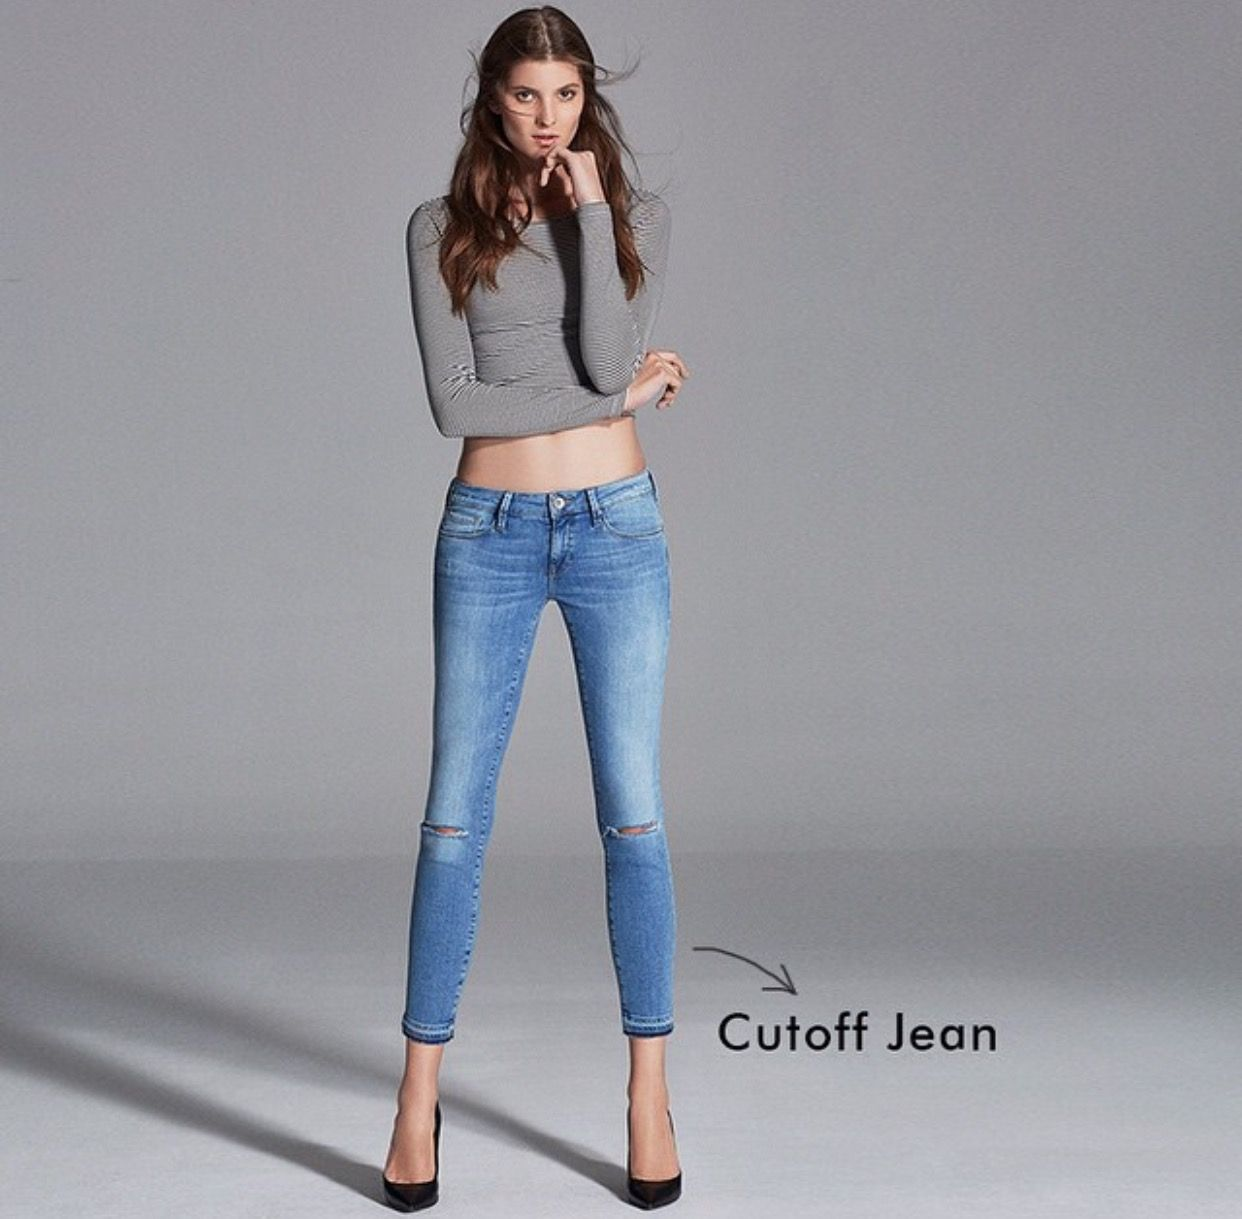 Pin by camille on style pinterest fashion jeans and style